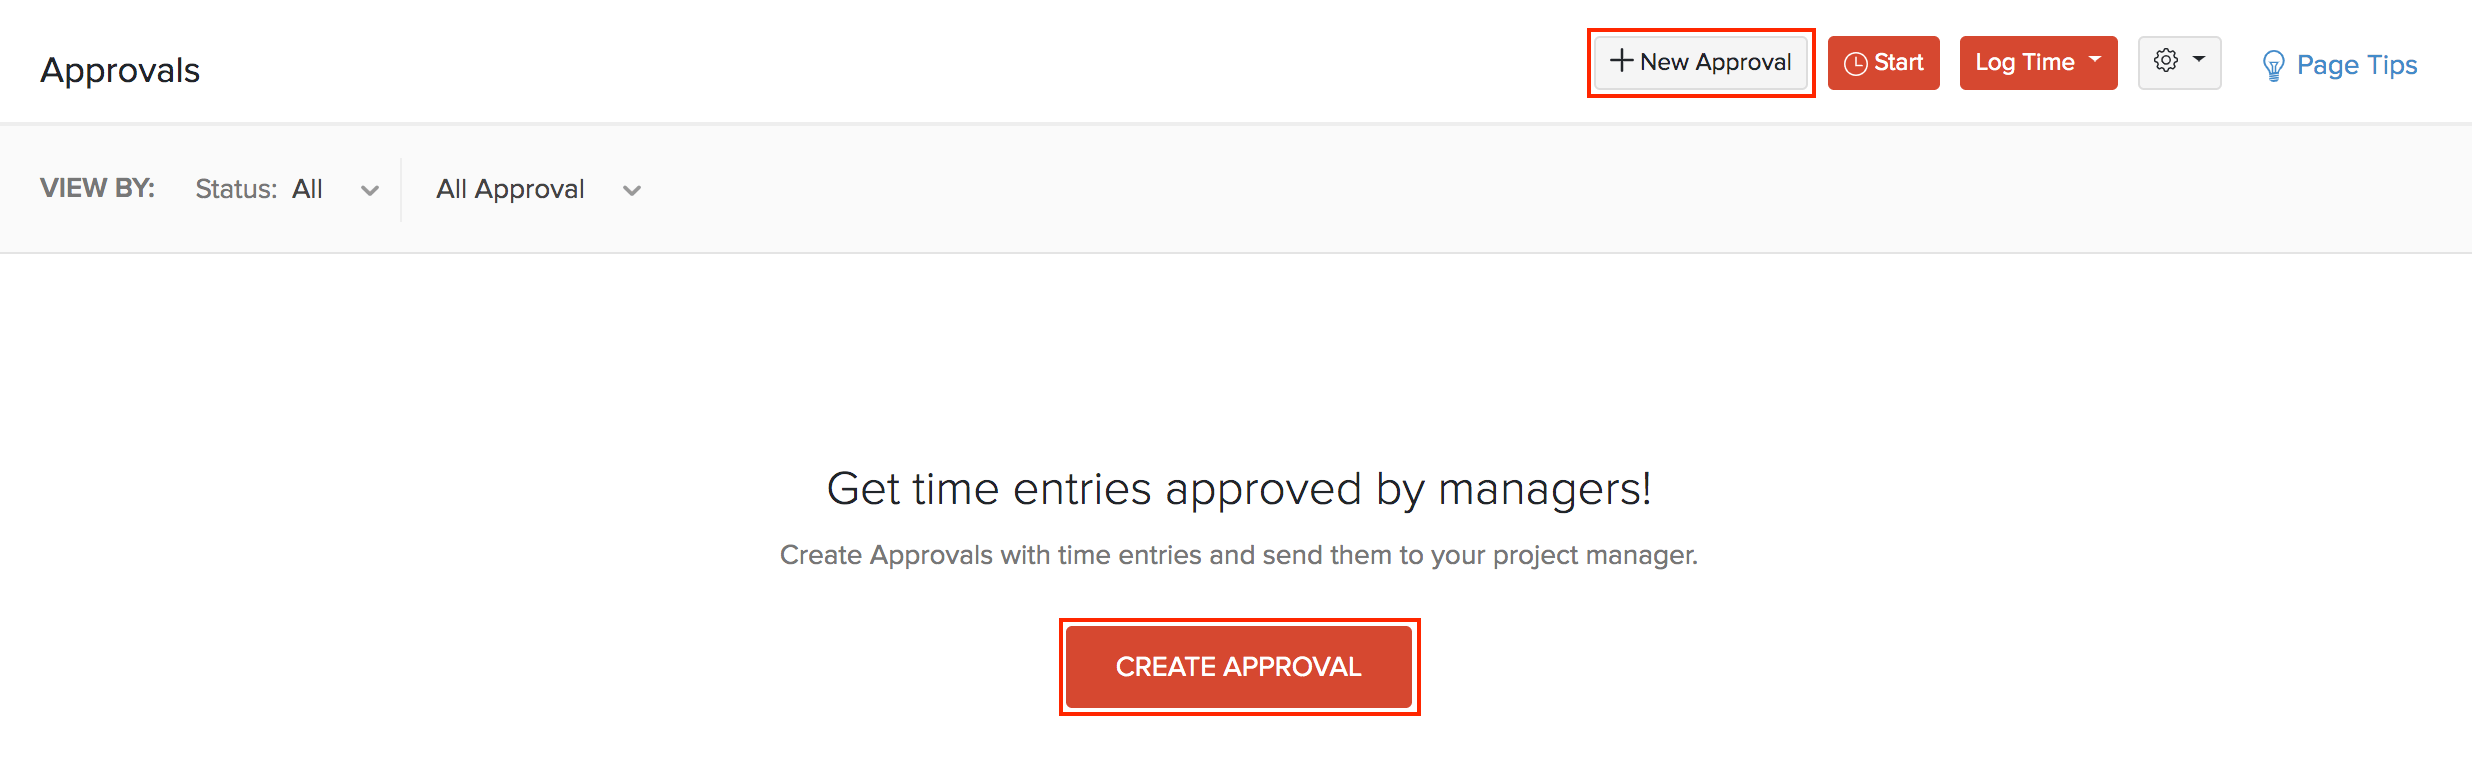 Create Approval